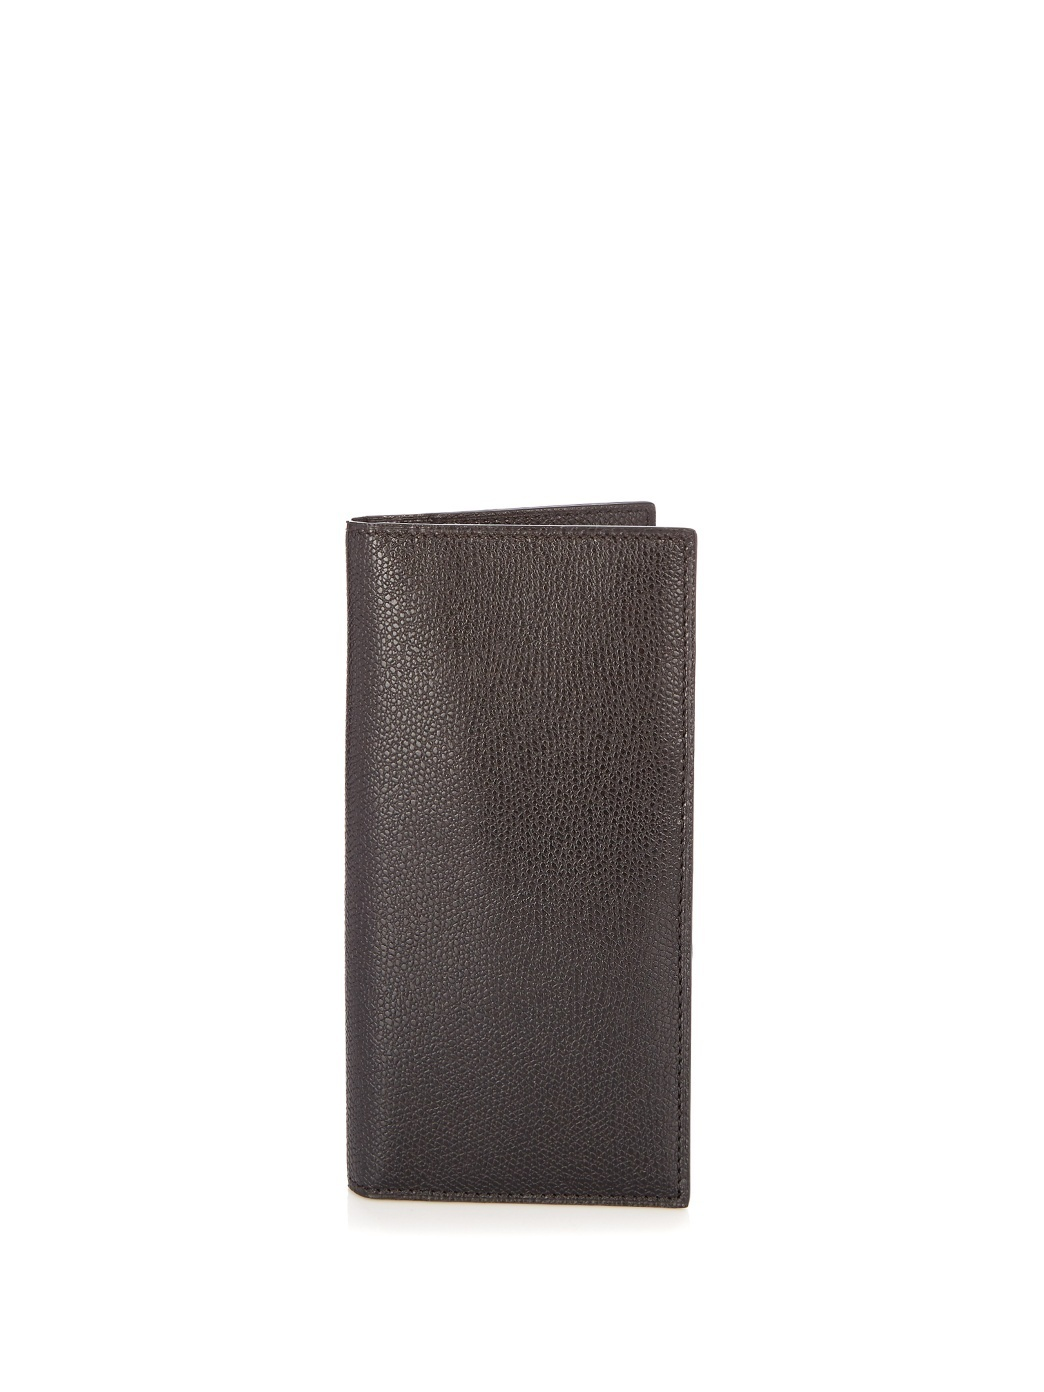 【VIPセール】Valextra★Vertical leather wallet 財布